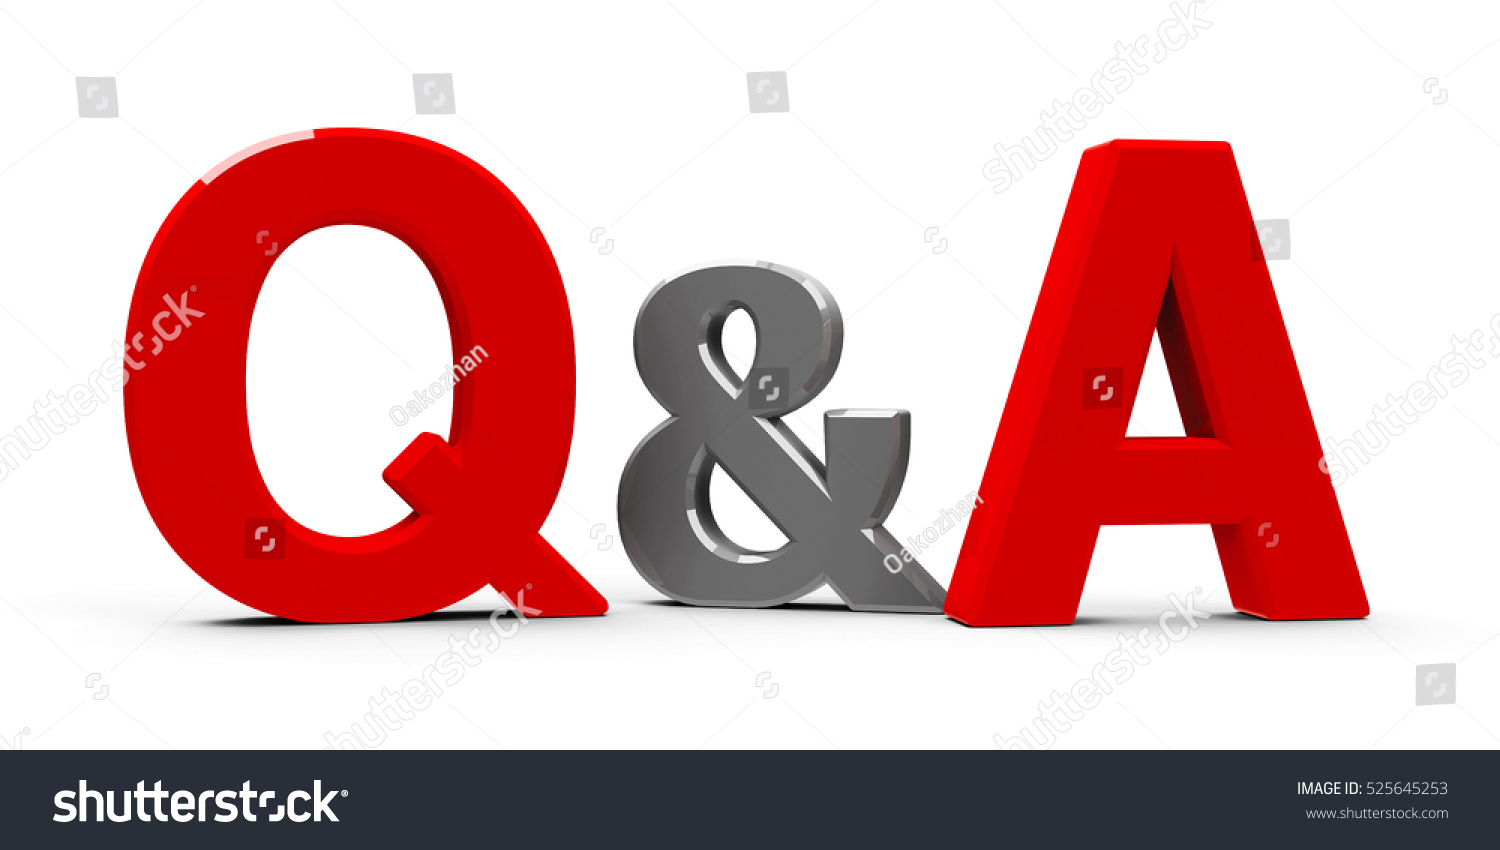 red qa questions answers symbol icons stock illustration  red q a questions and answers symbol or icons isolated on white background three